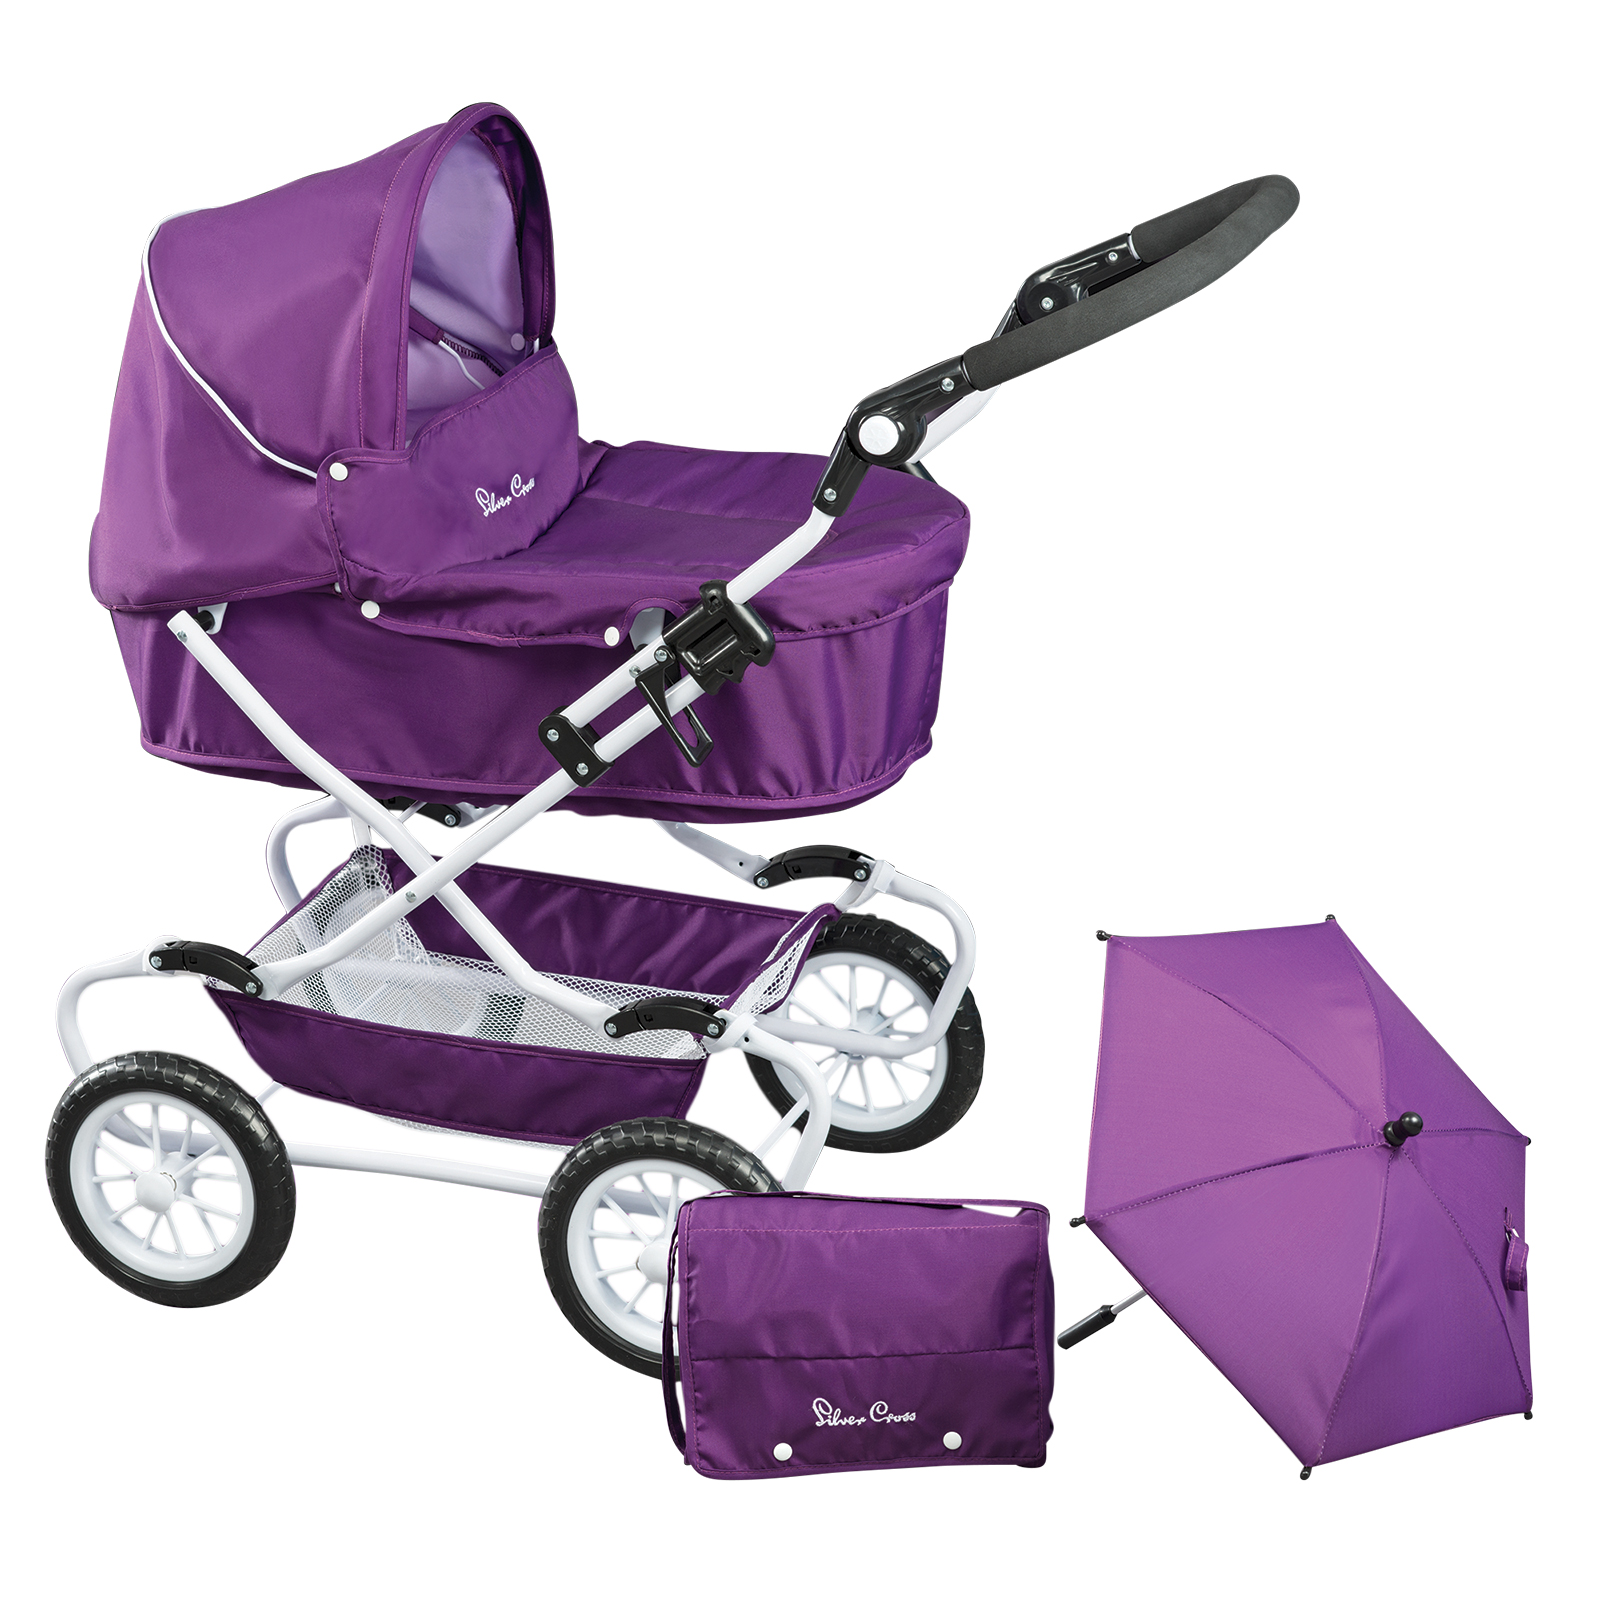 Silver Cross Classic Dolls Pram Damson Purple Girls Toy Stroller ...